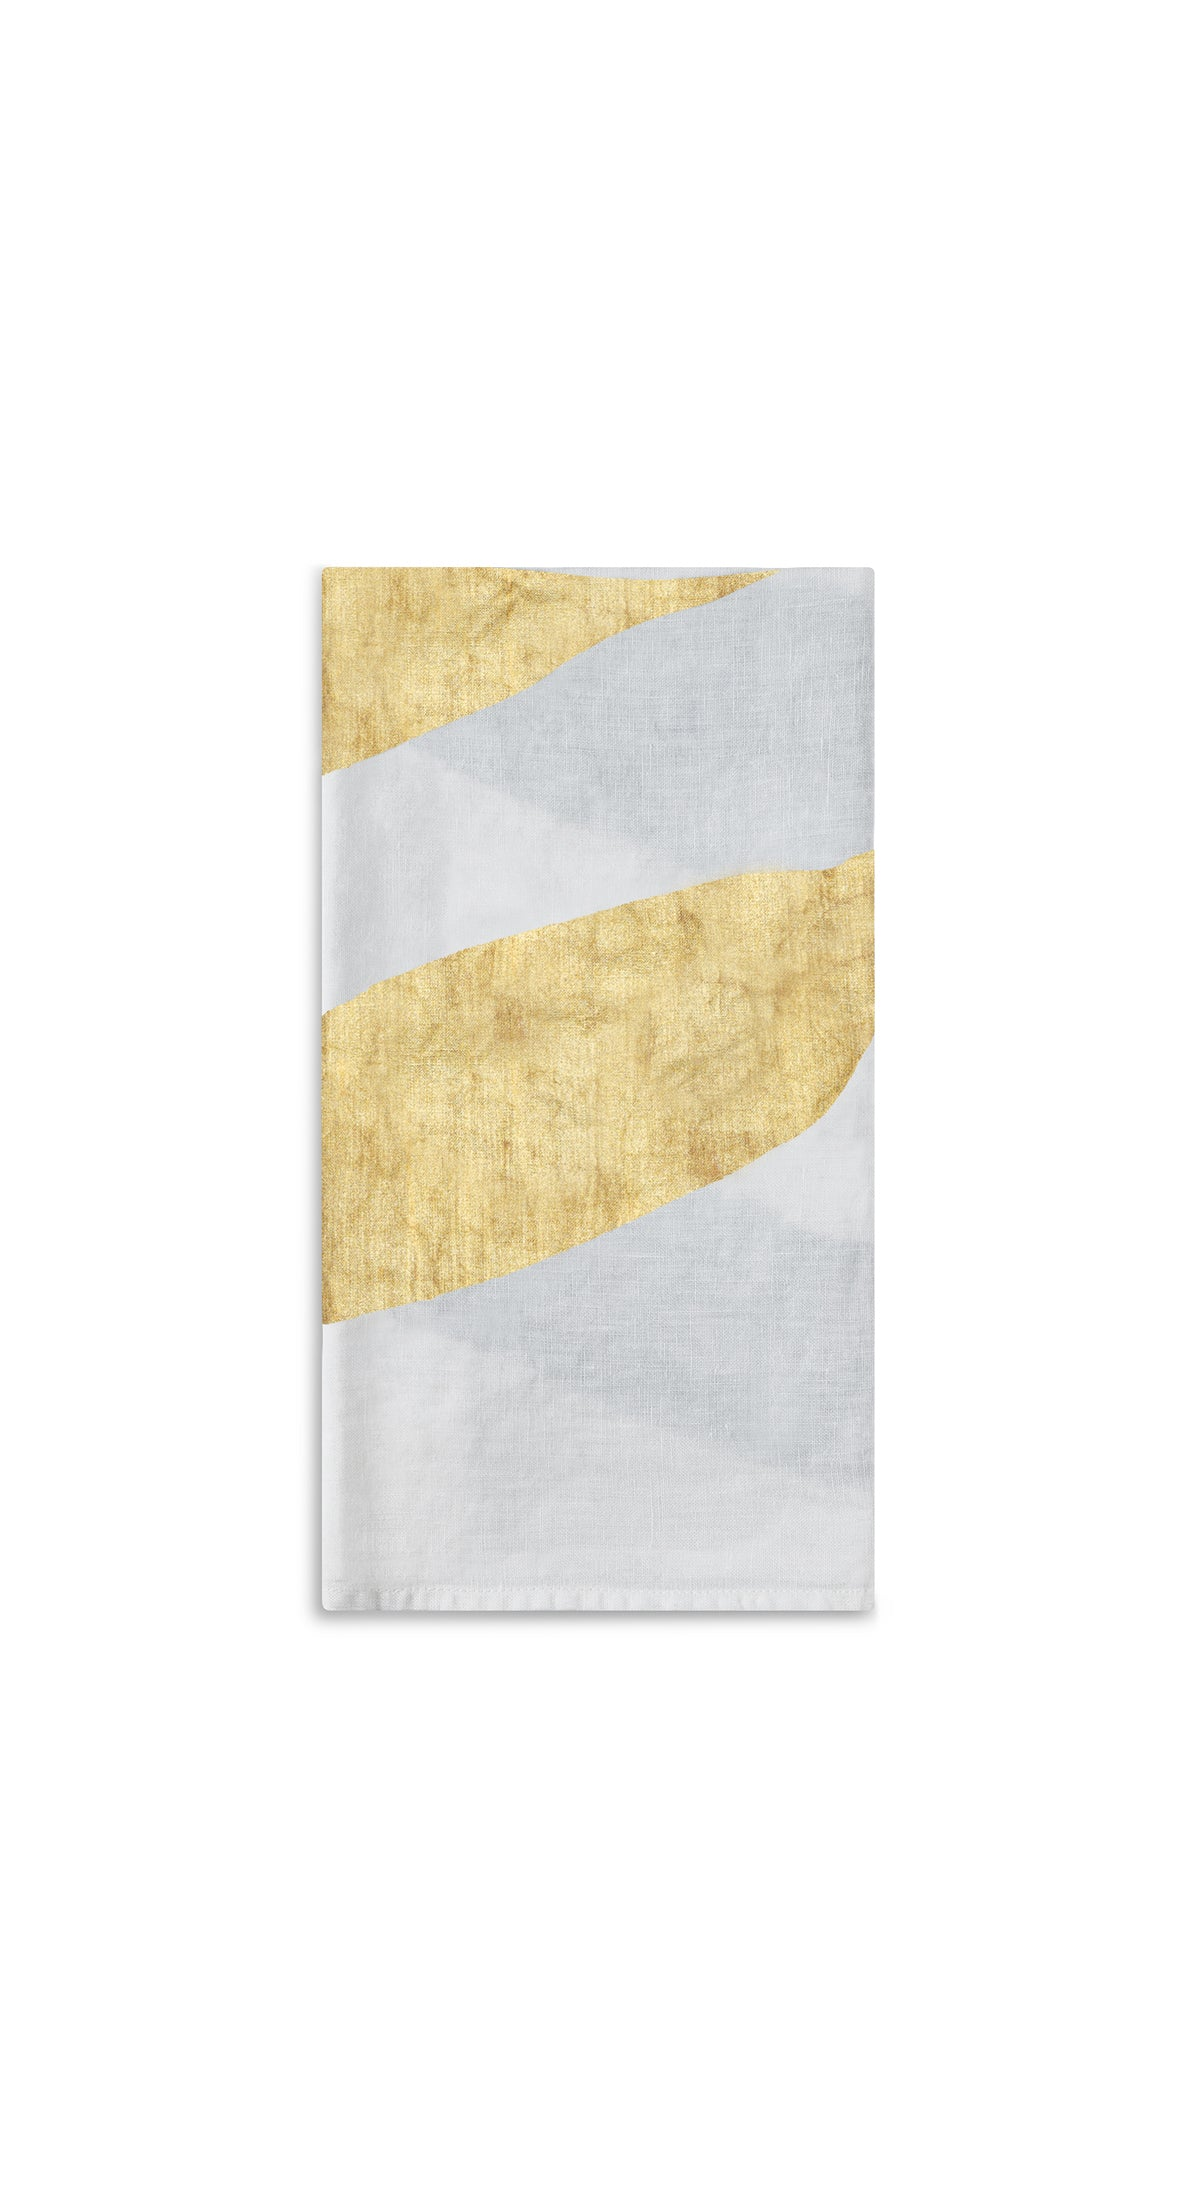 Alphabet Napkin 'E' in Gold